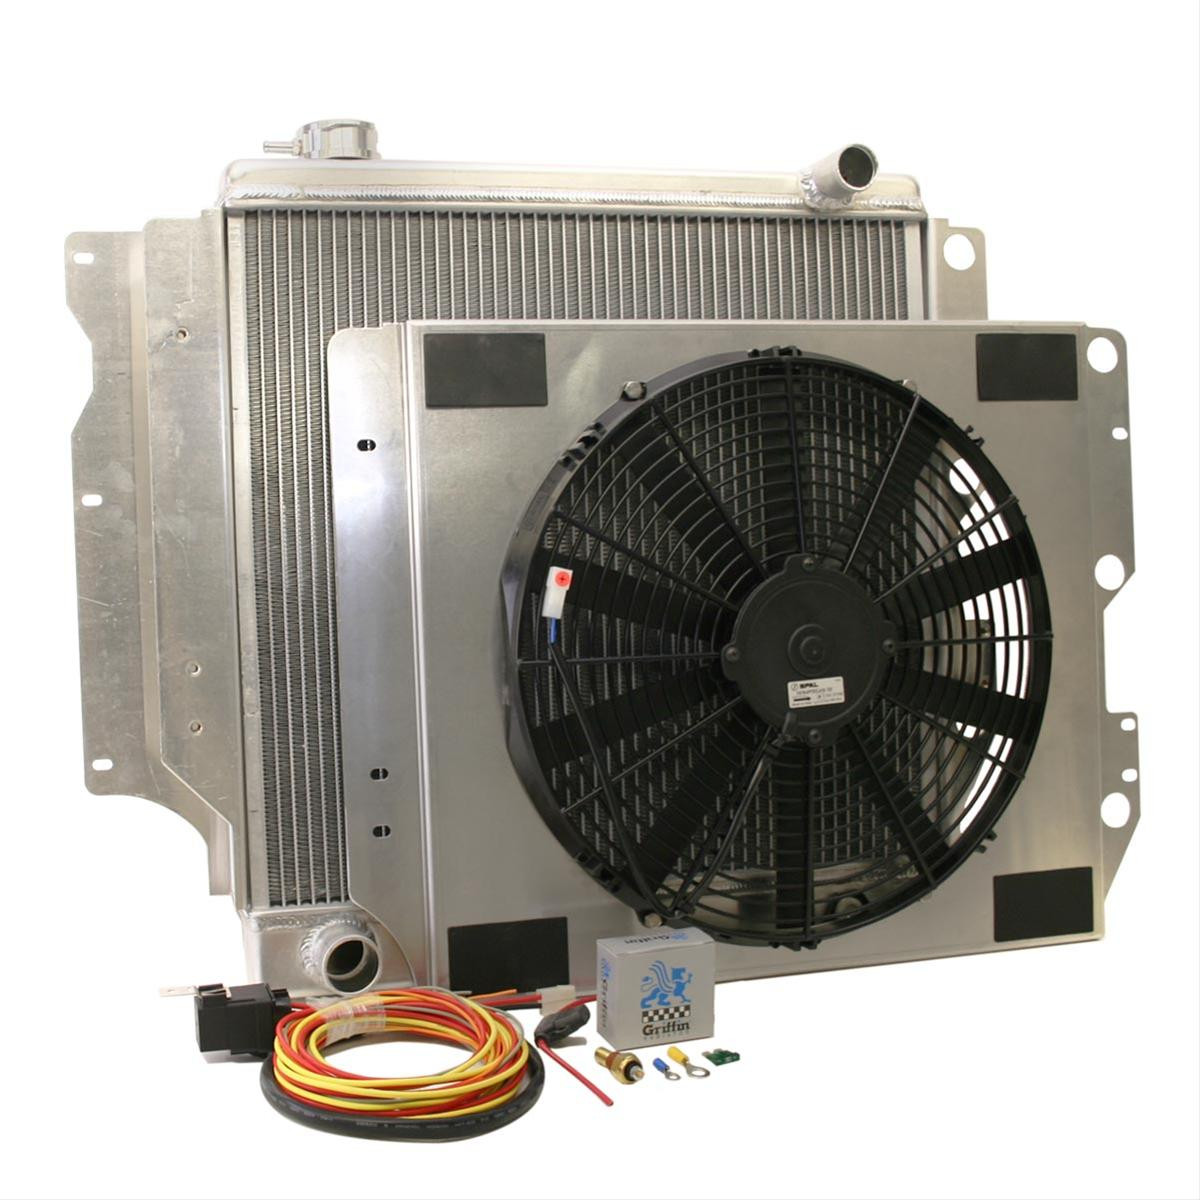 Griffin Heavy Duty Jeep Radiator with fan, shroud and accessories, 1987 - 2006